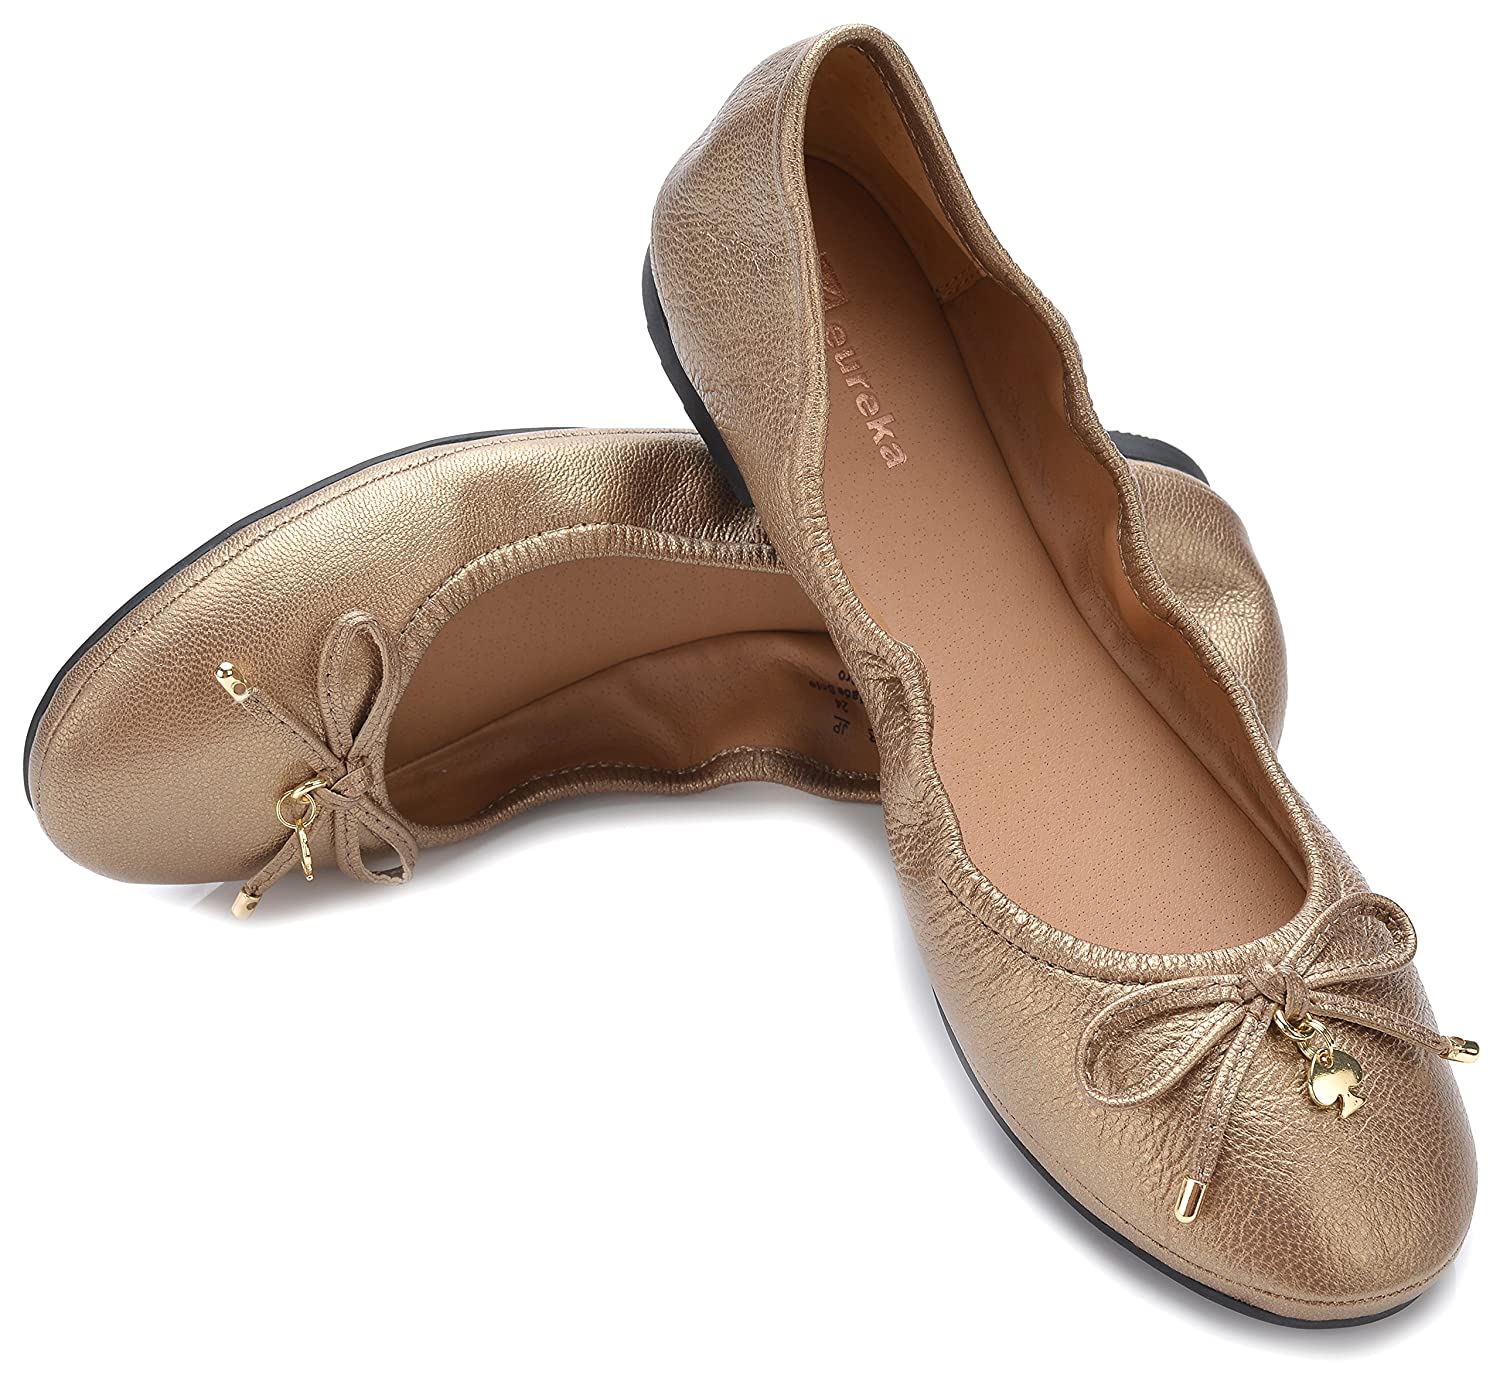 Eureka USA Women's Universe Leather Ballet Flat B074V3FCR7 9 B(M) US|505 Bronze Gold